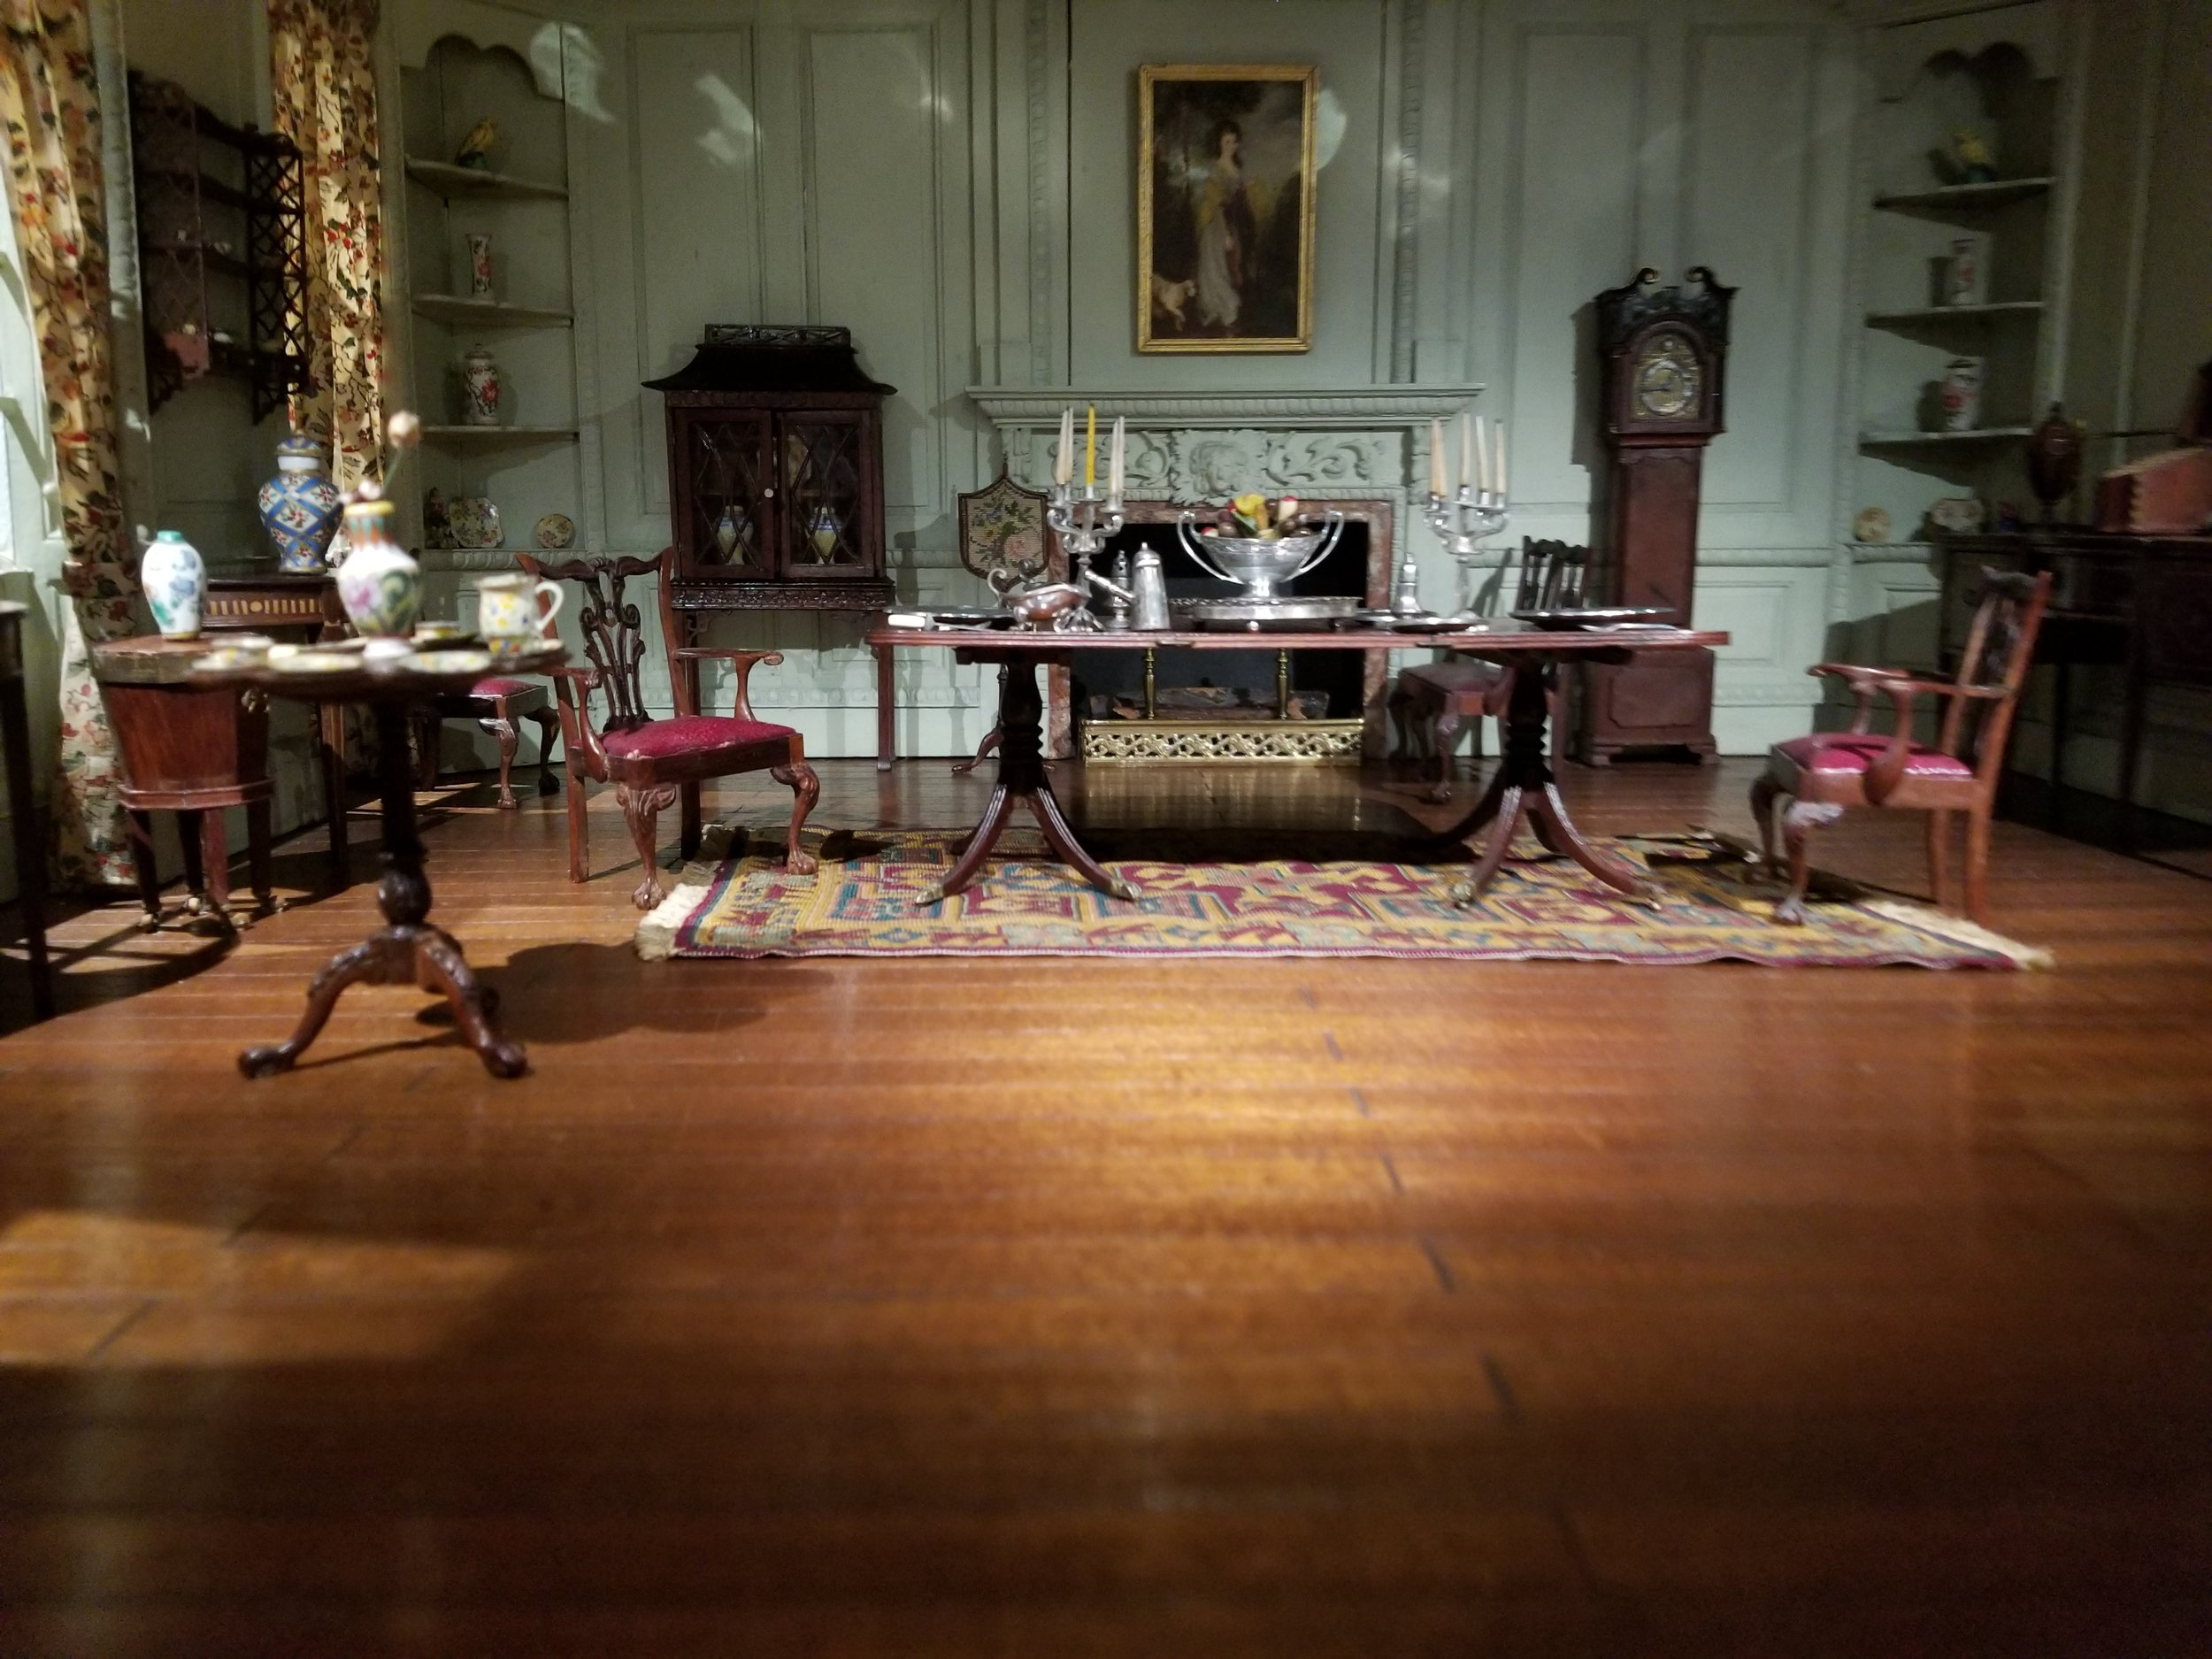 Part of the collection in the Thorne Rooms.